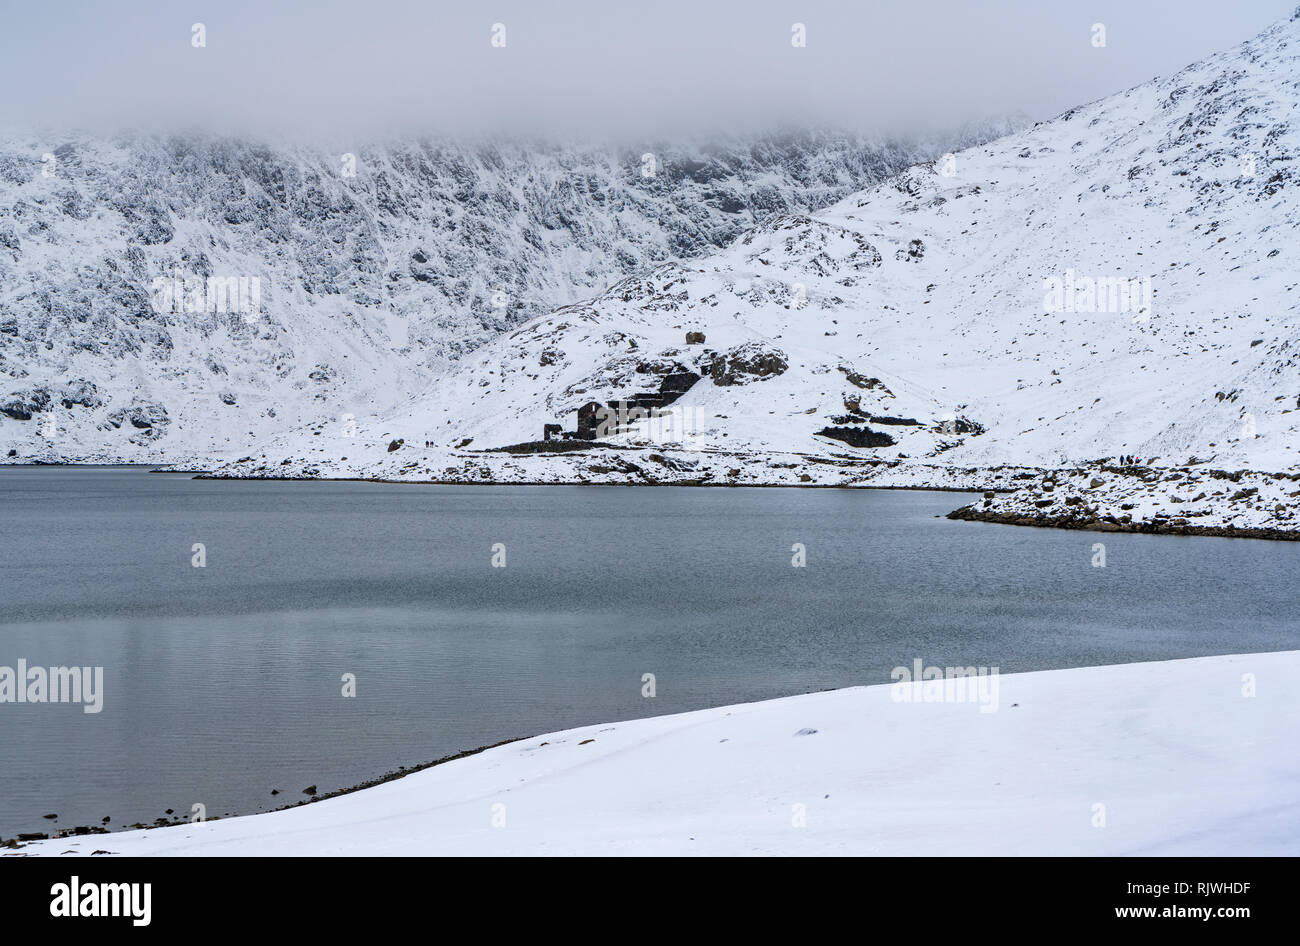 Views along the Miner's Track towards the summit of Y Wyddfa (Snowdon) on a snowy, Winter's day. Stock Photo